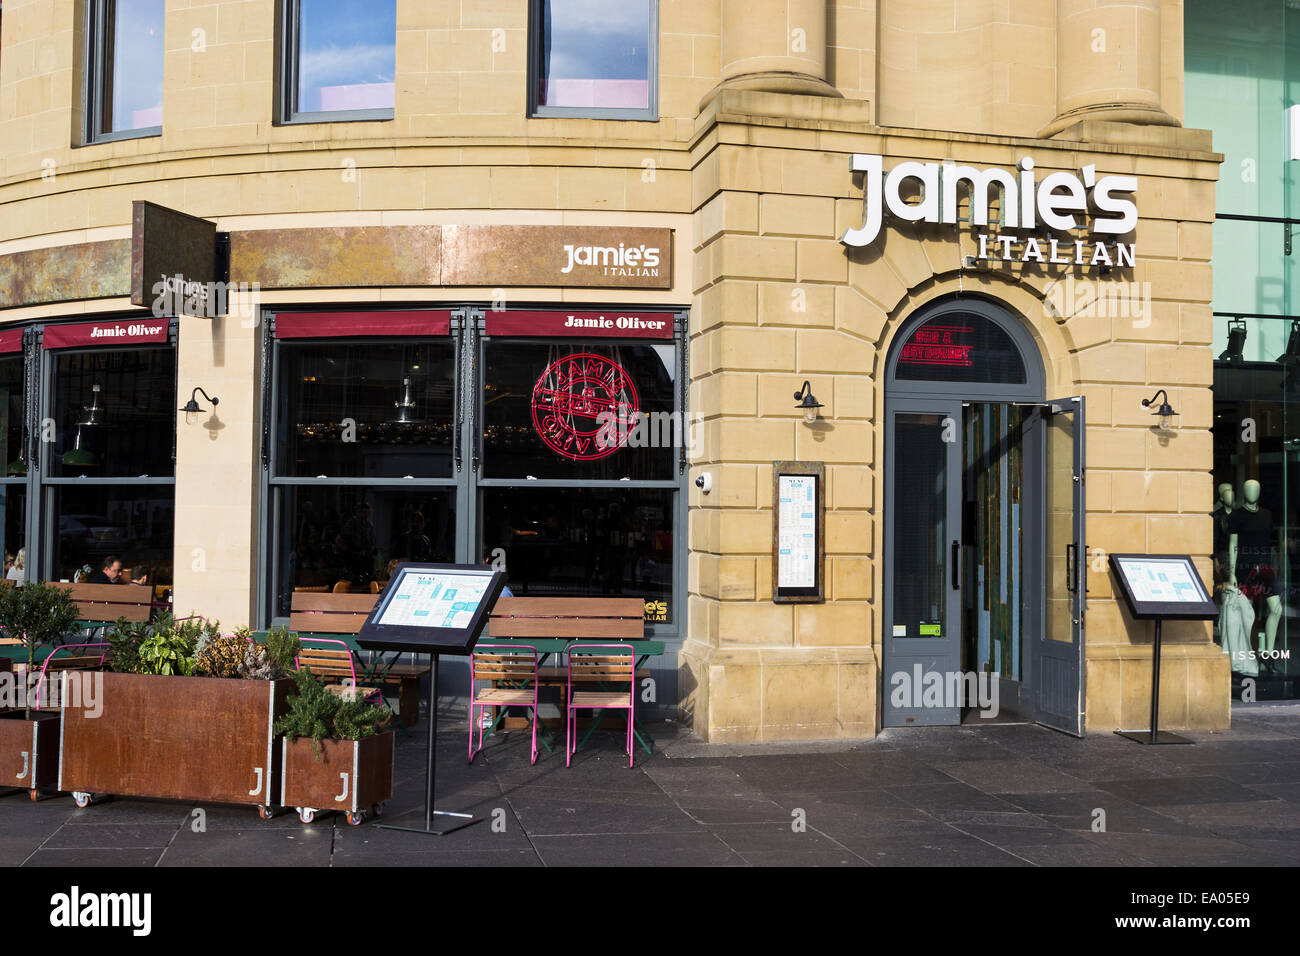 jamie oliver italian restaurant at newcastle upon tyne showing stock photo royalty free image. Black Bedroom Furniture Sets. Home Design Ideas